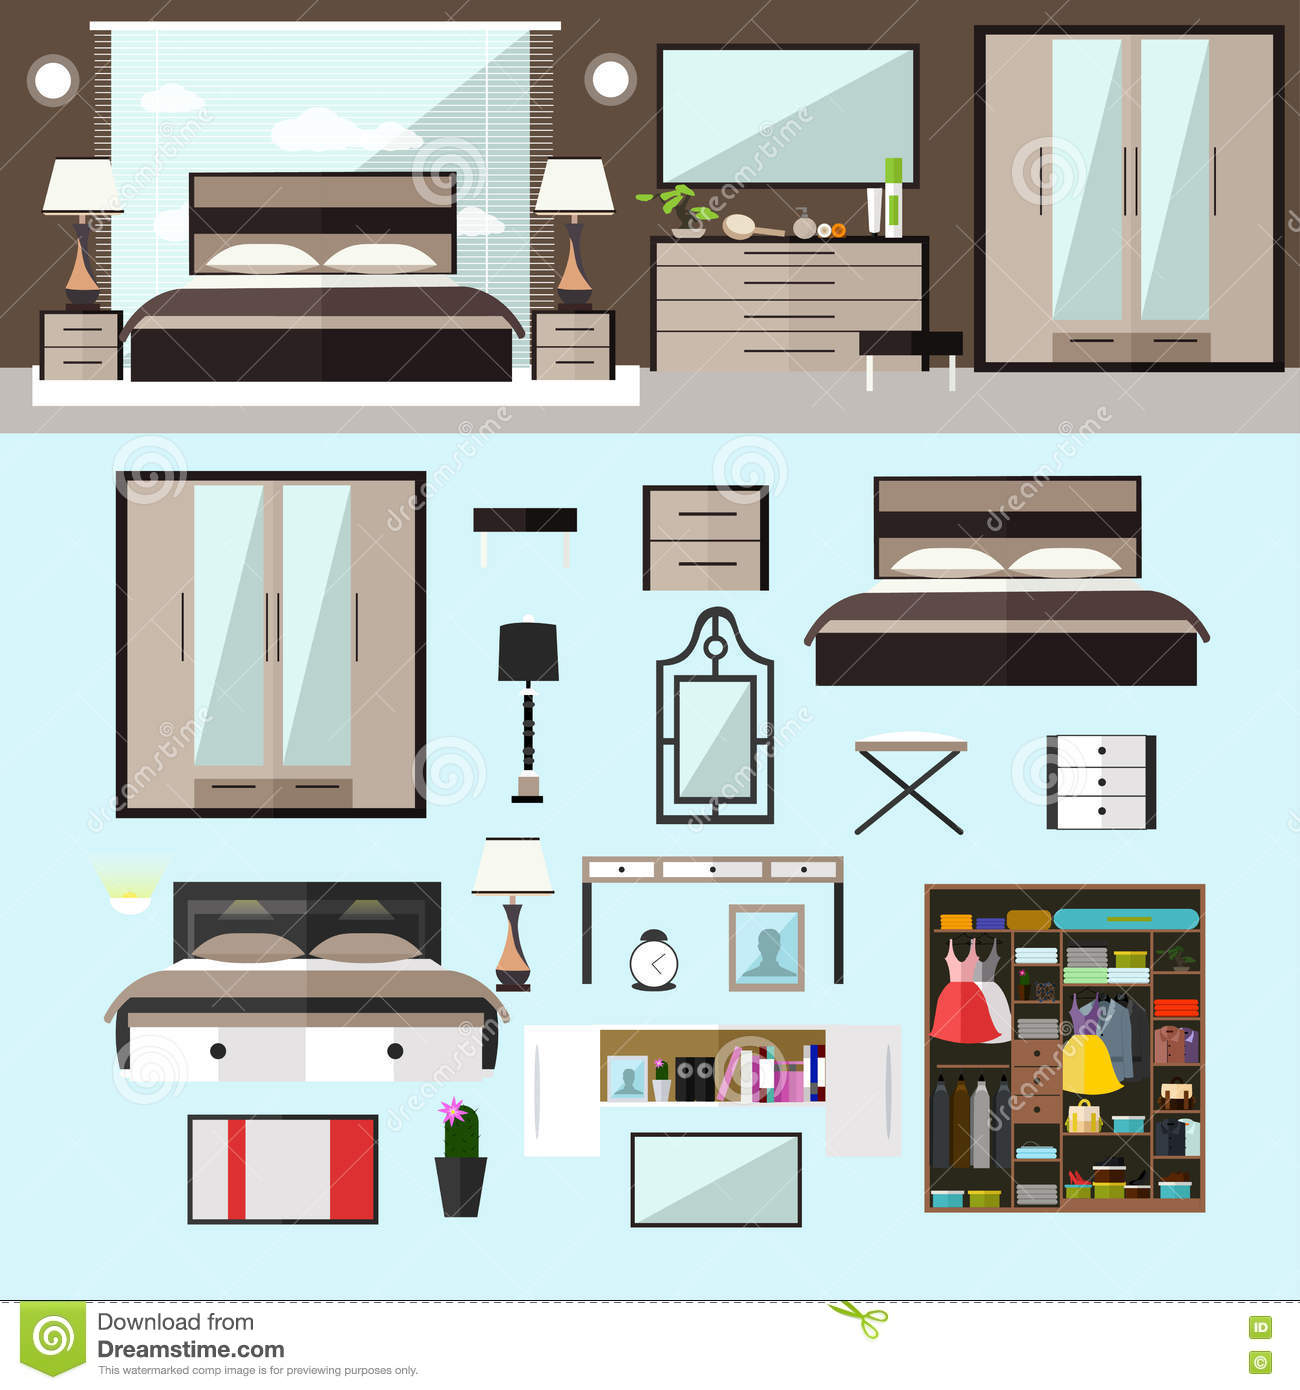 home design elements bedroom interior in flat style vector illustration house 12115